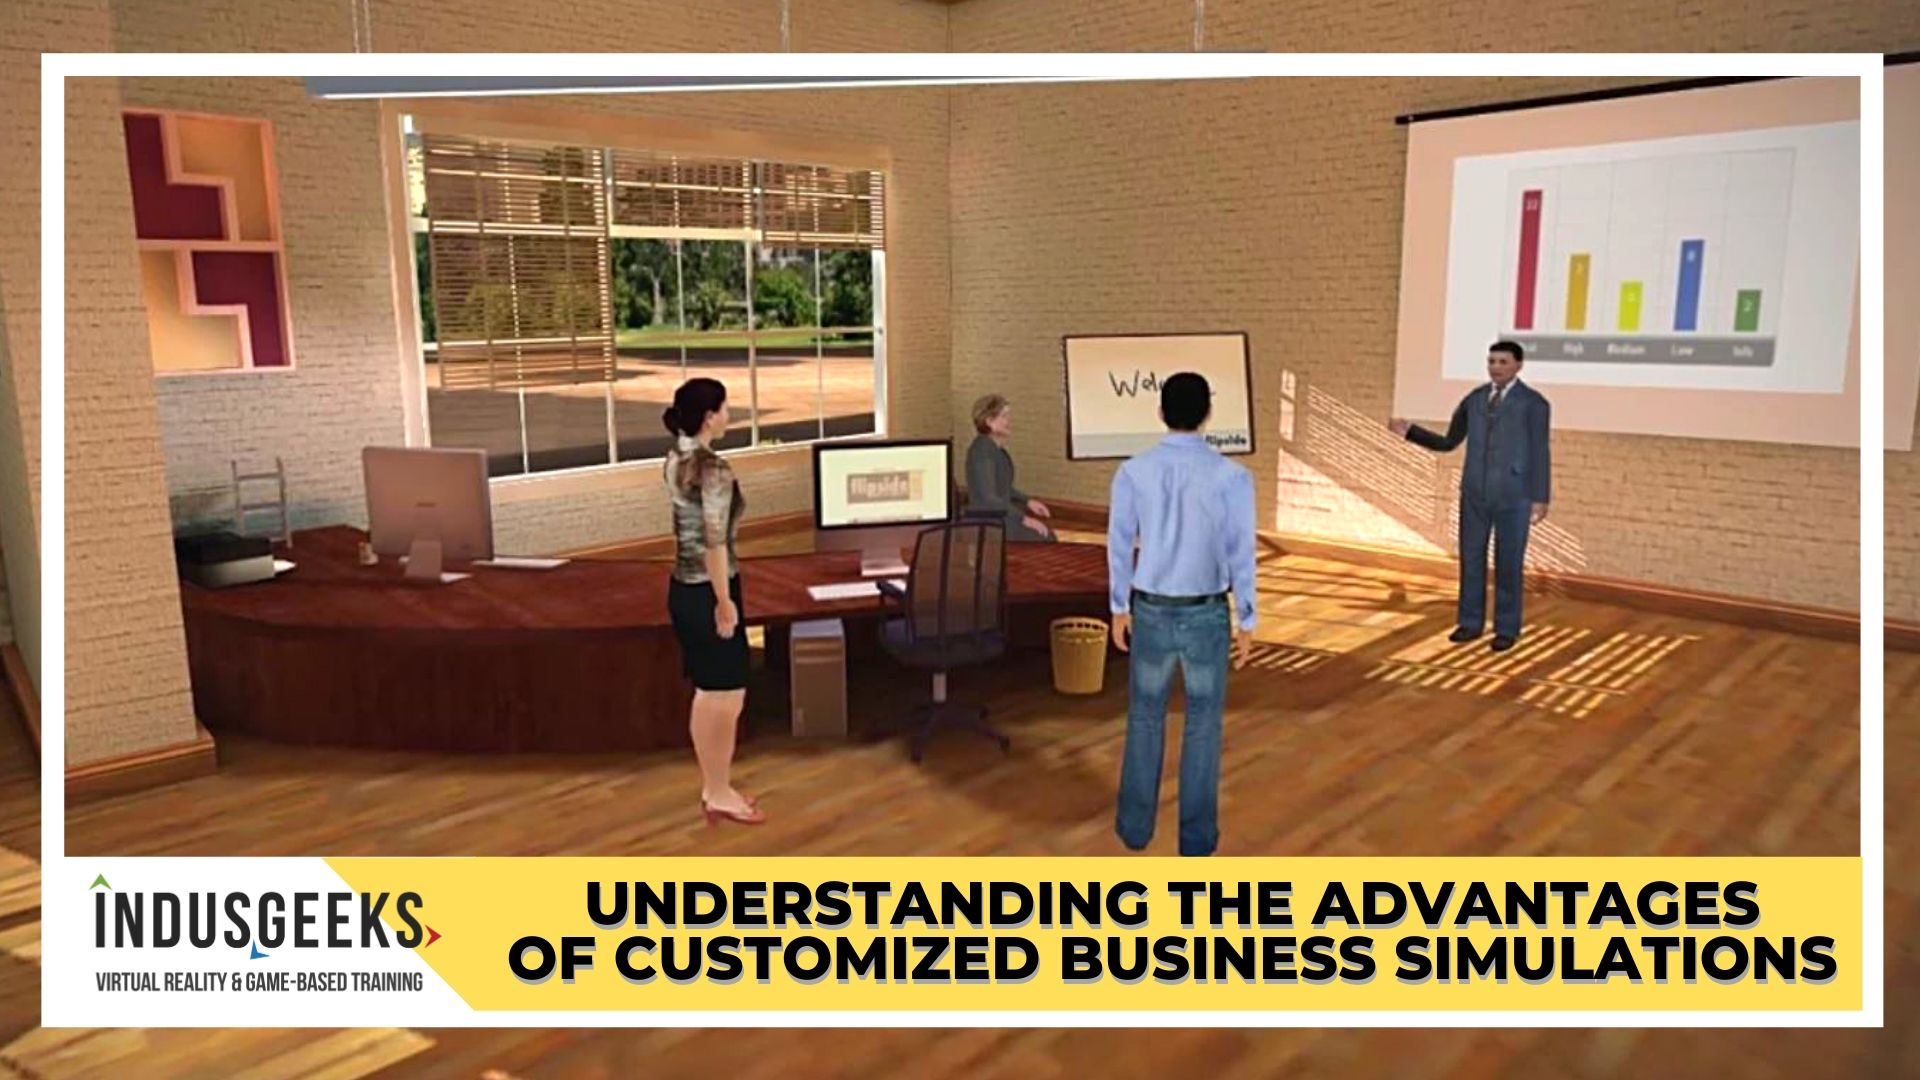 Customized Business Simulations